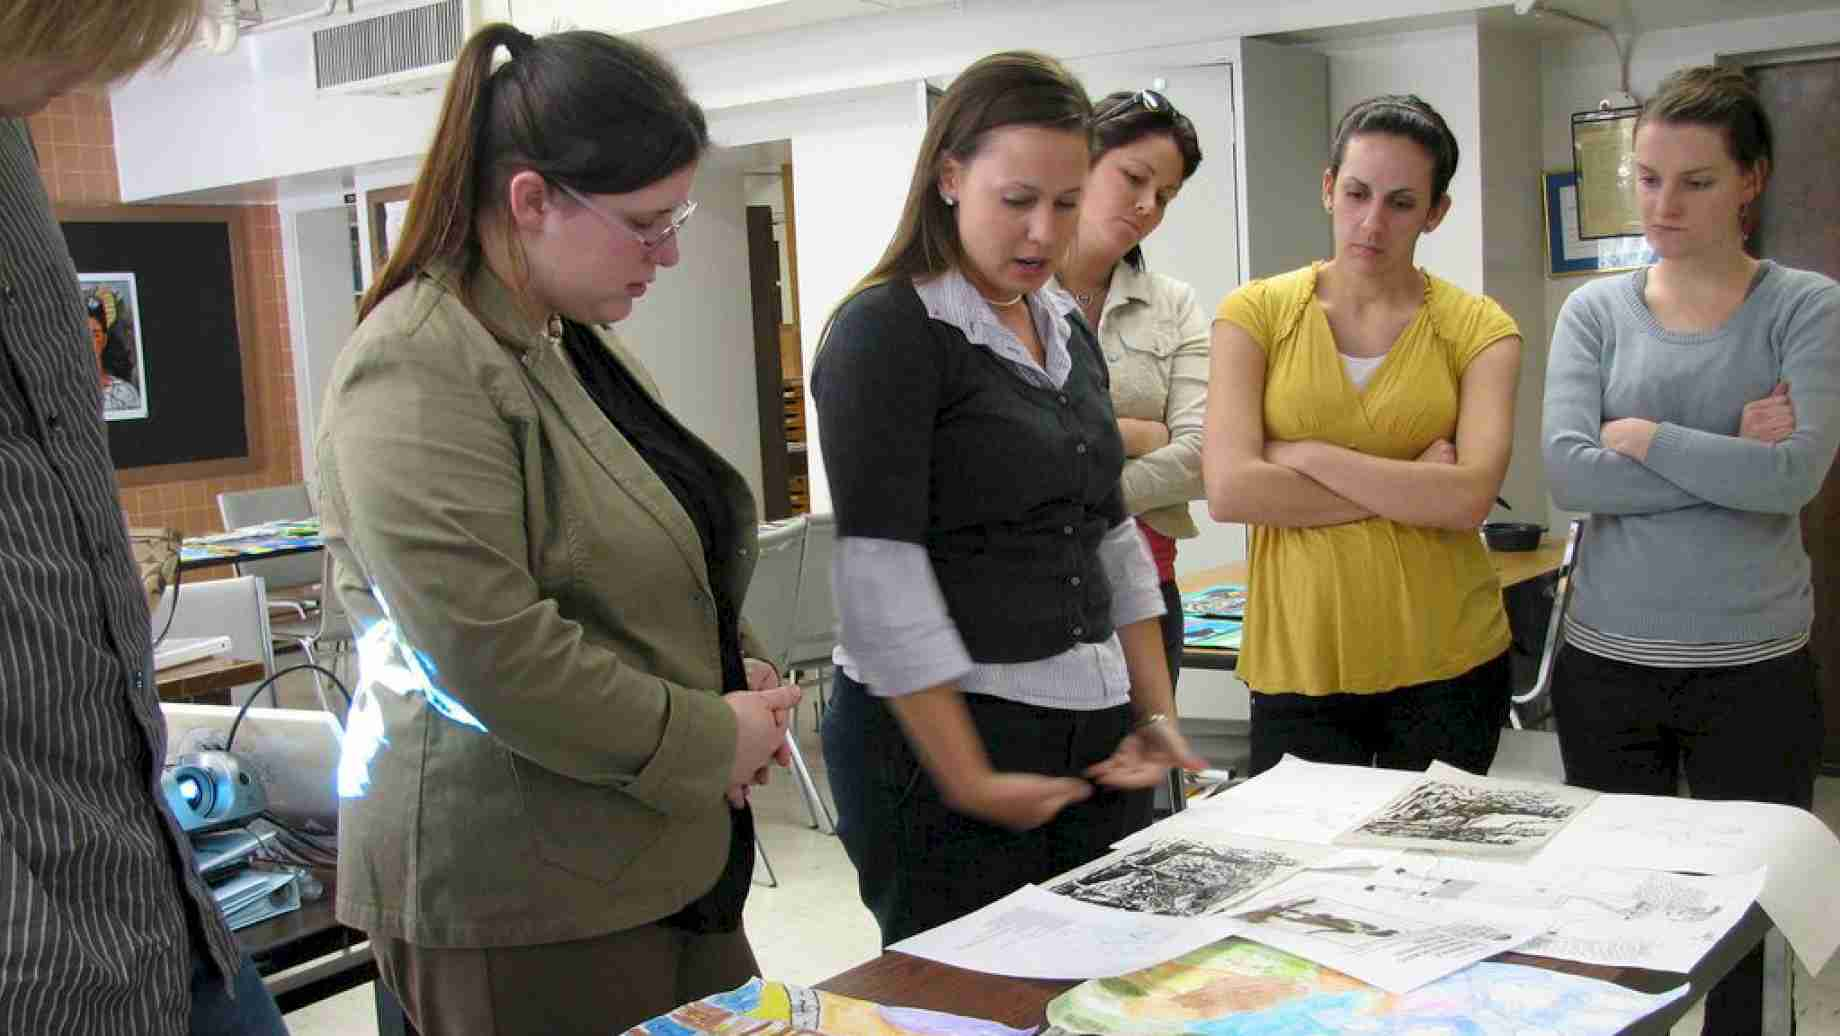 Art education student teachers meet to discuss student art from each of their internship school placements.